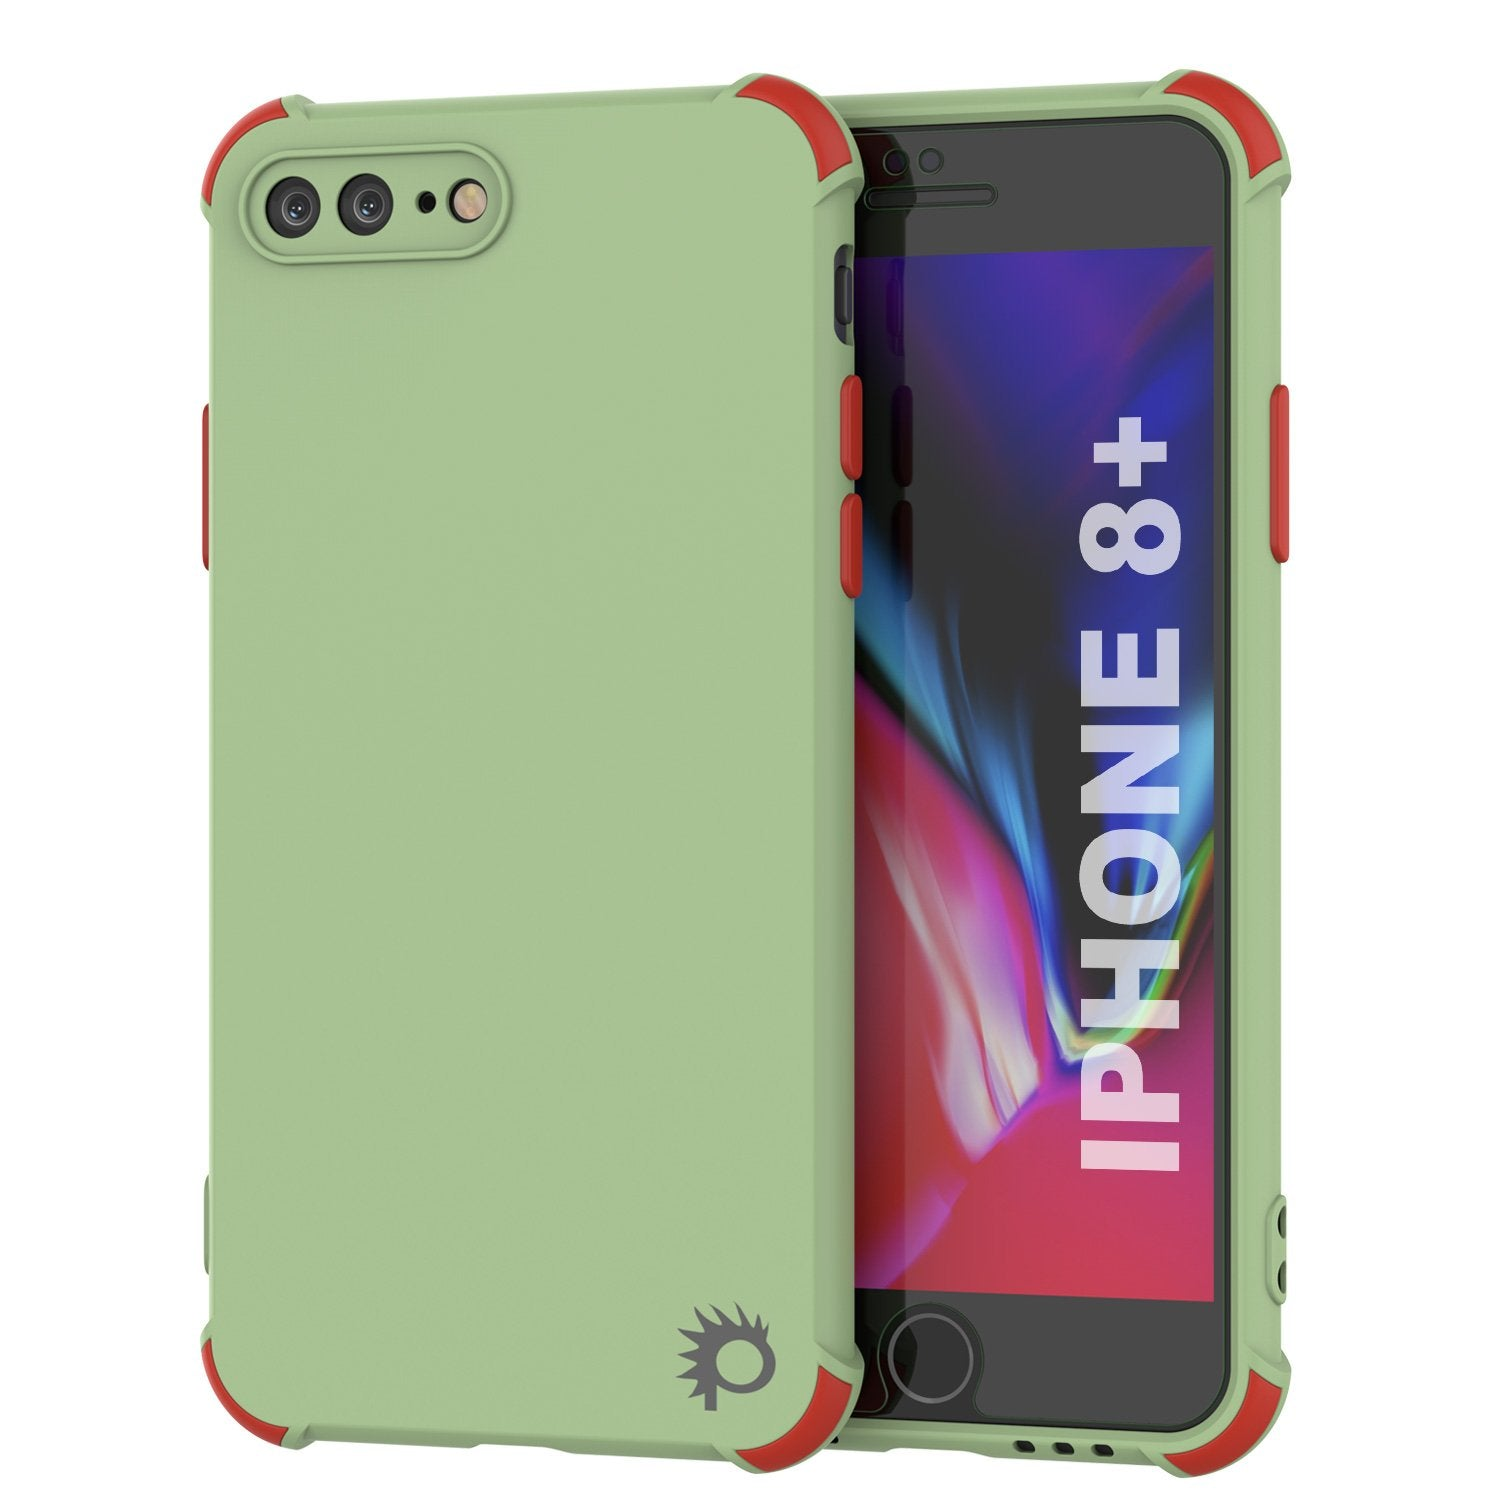 Punkcase Protective & Lightweight TPU Case [Sunshine Series] for iPhone 8+ Plus [Light Green]